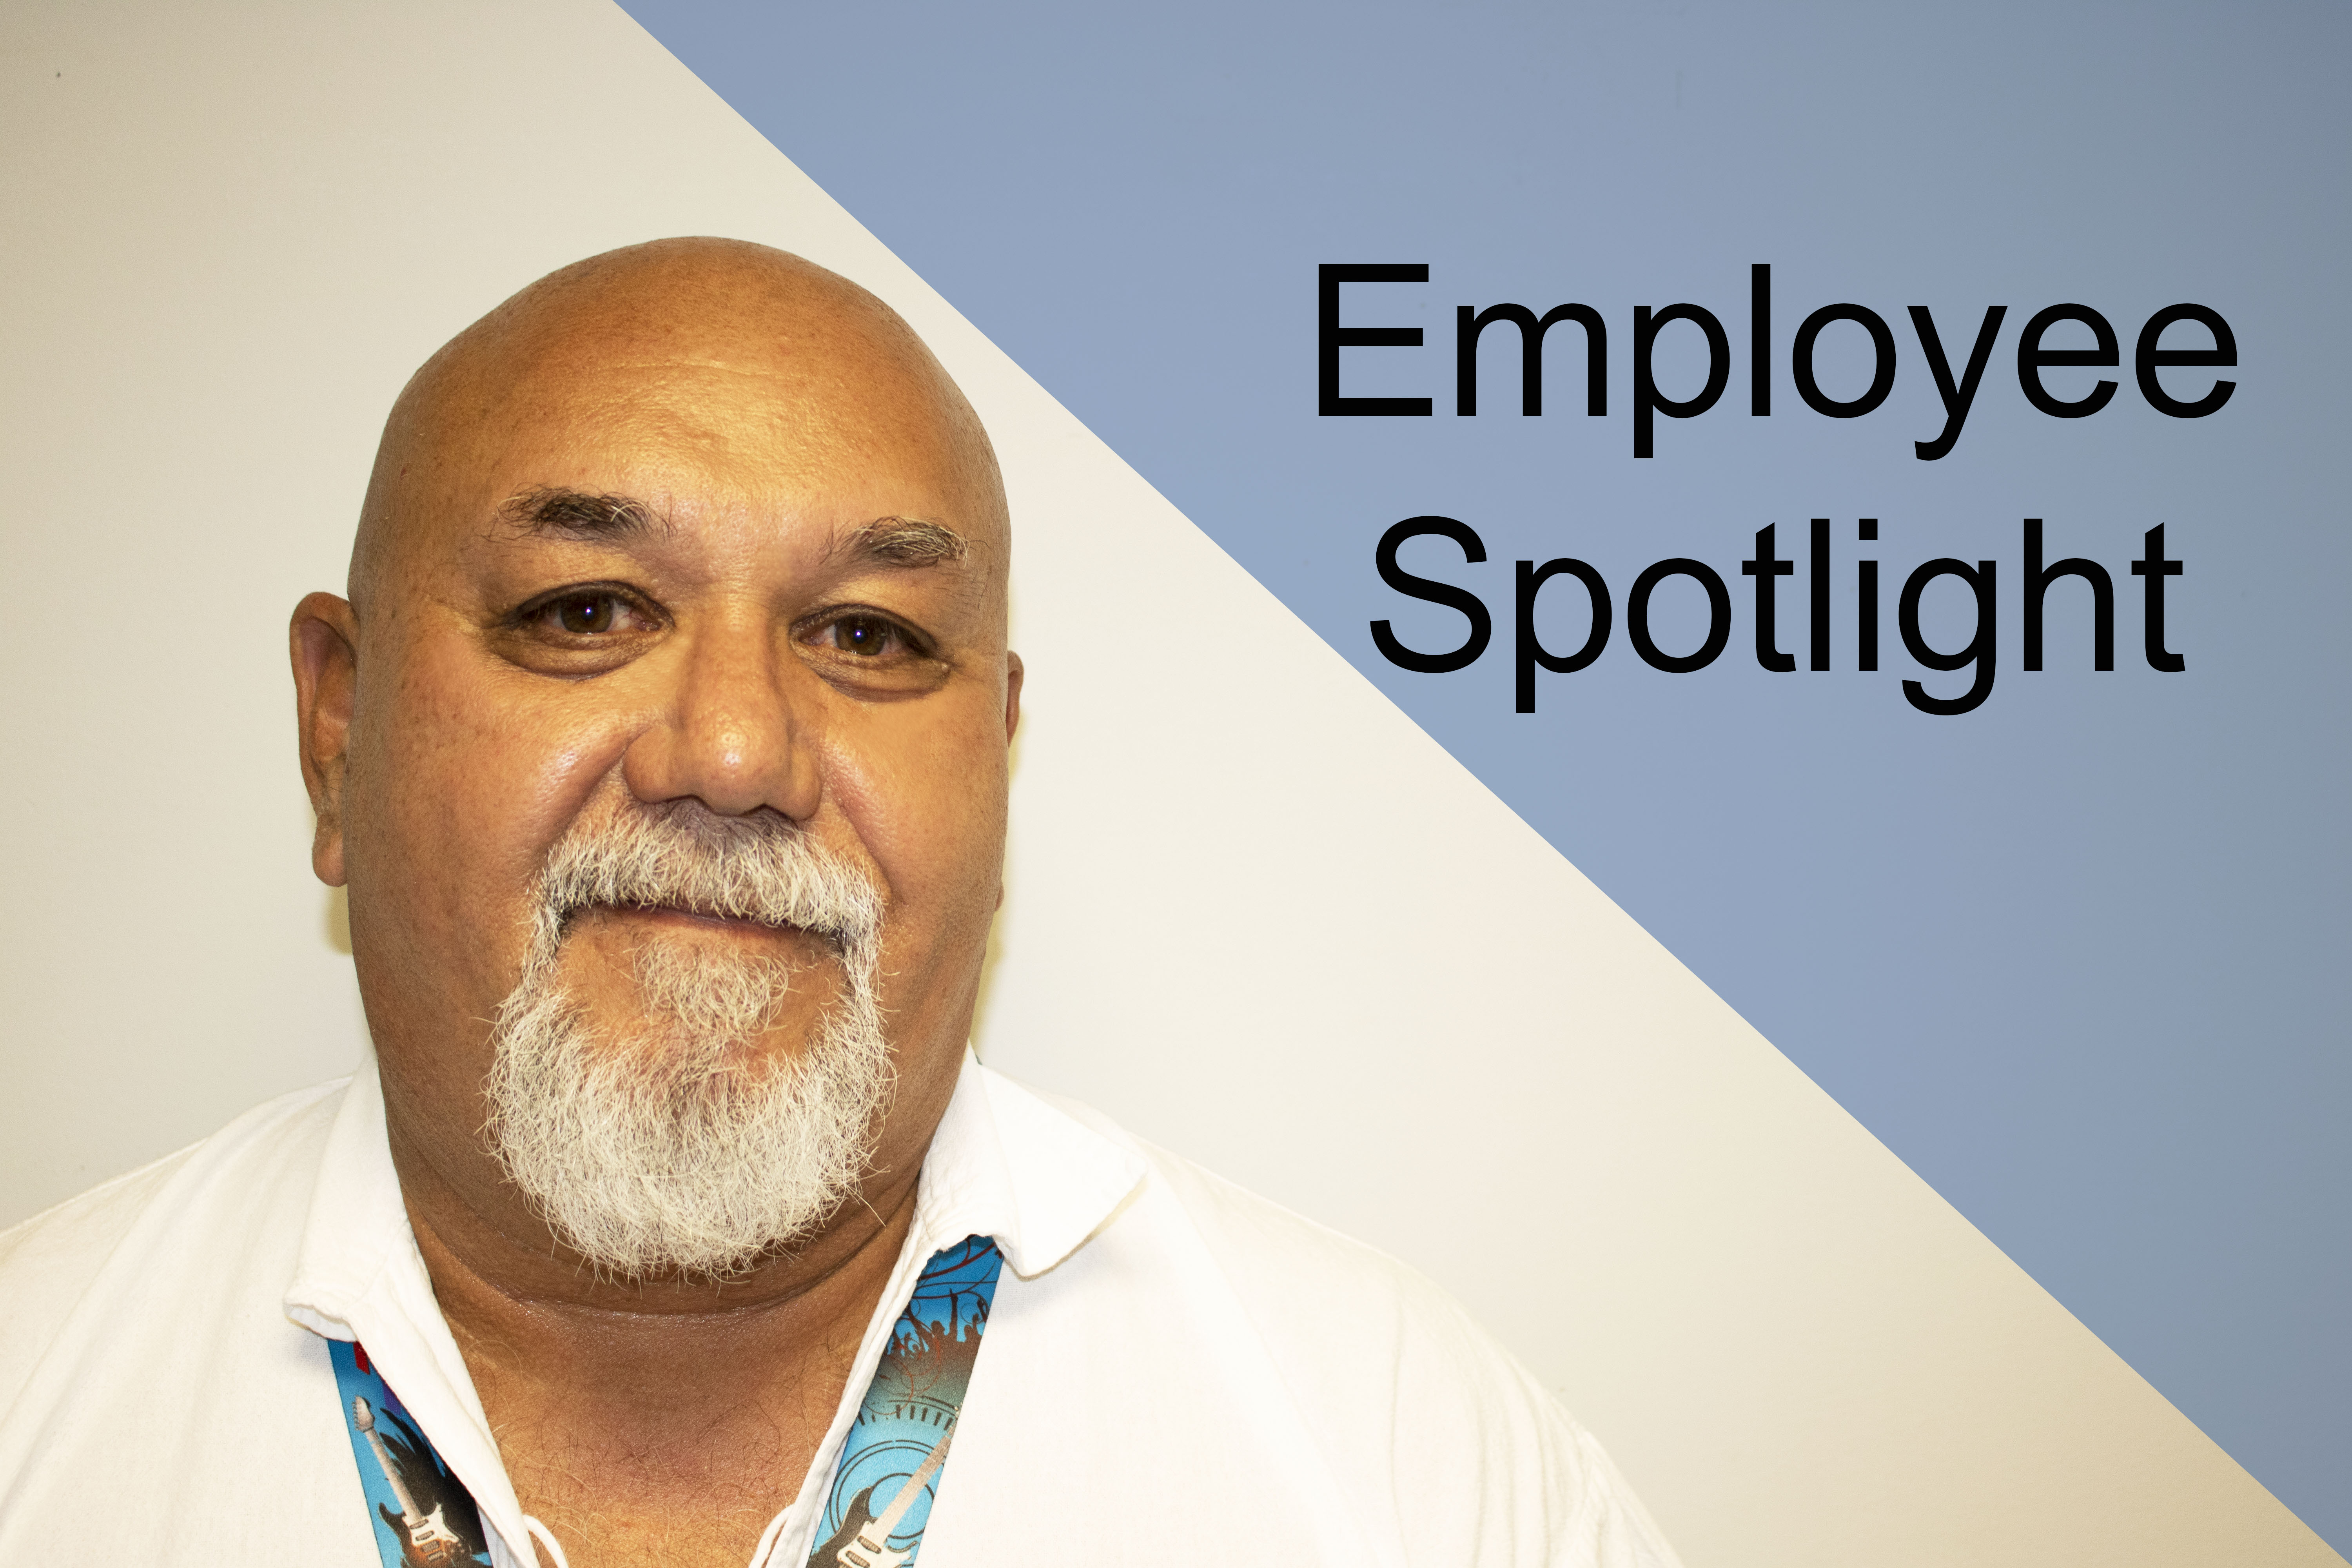 Employee Spotlight – Joe Gregg